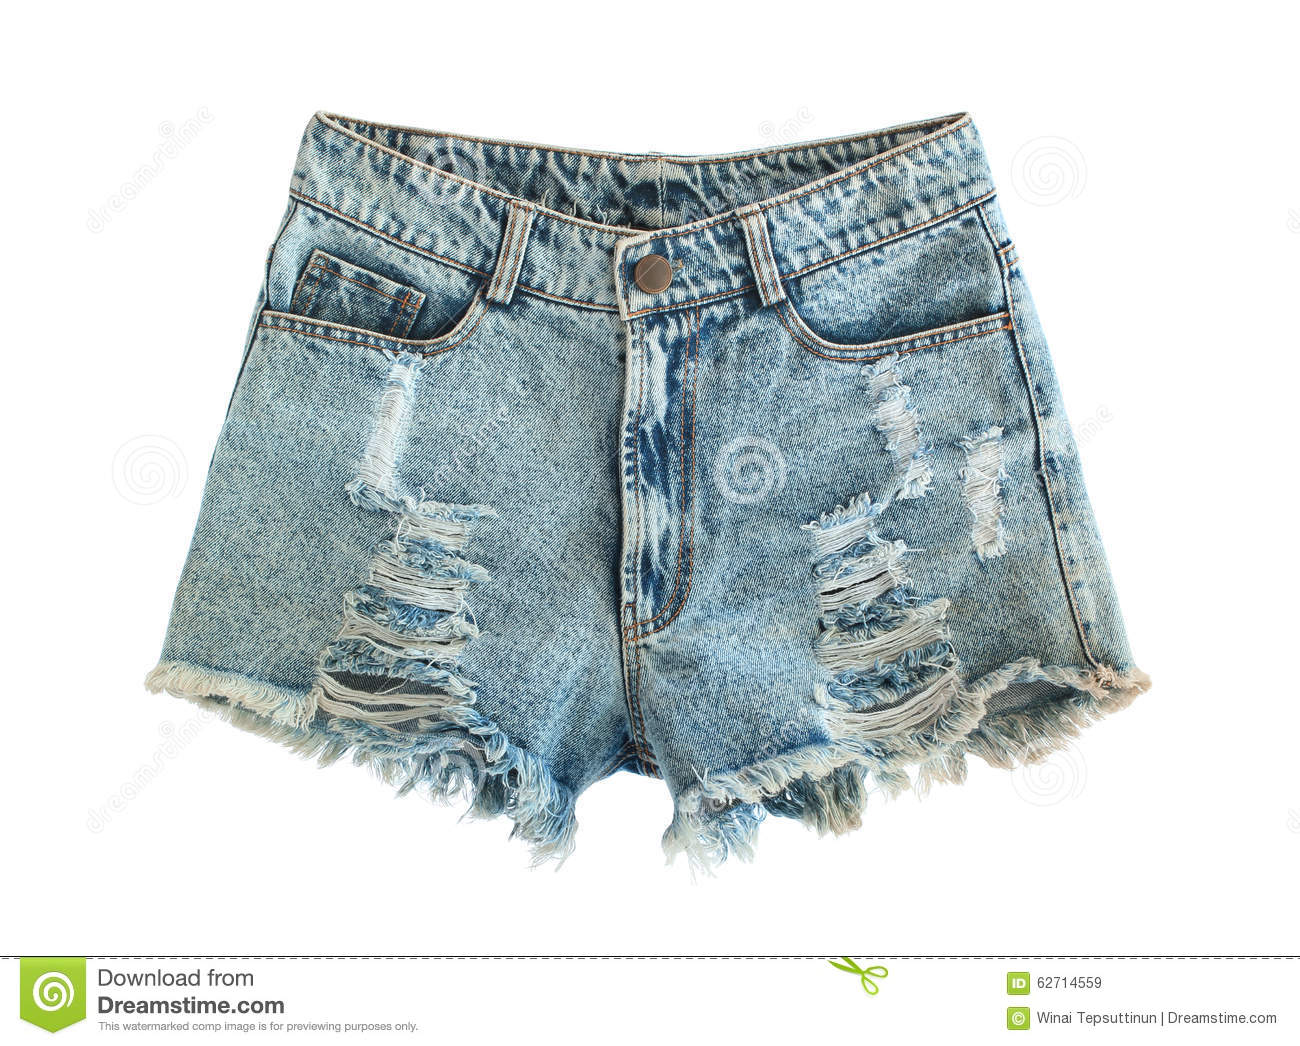 Ripped jeans shorts stock image Image of jeanswear